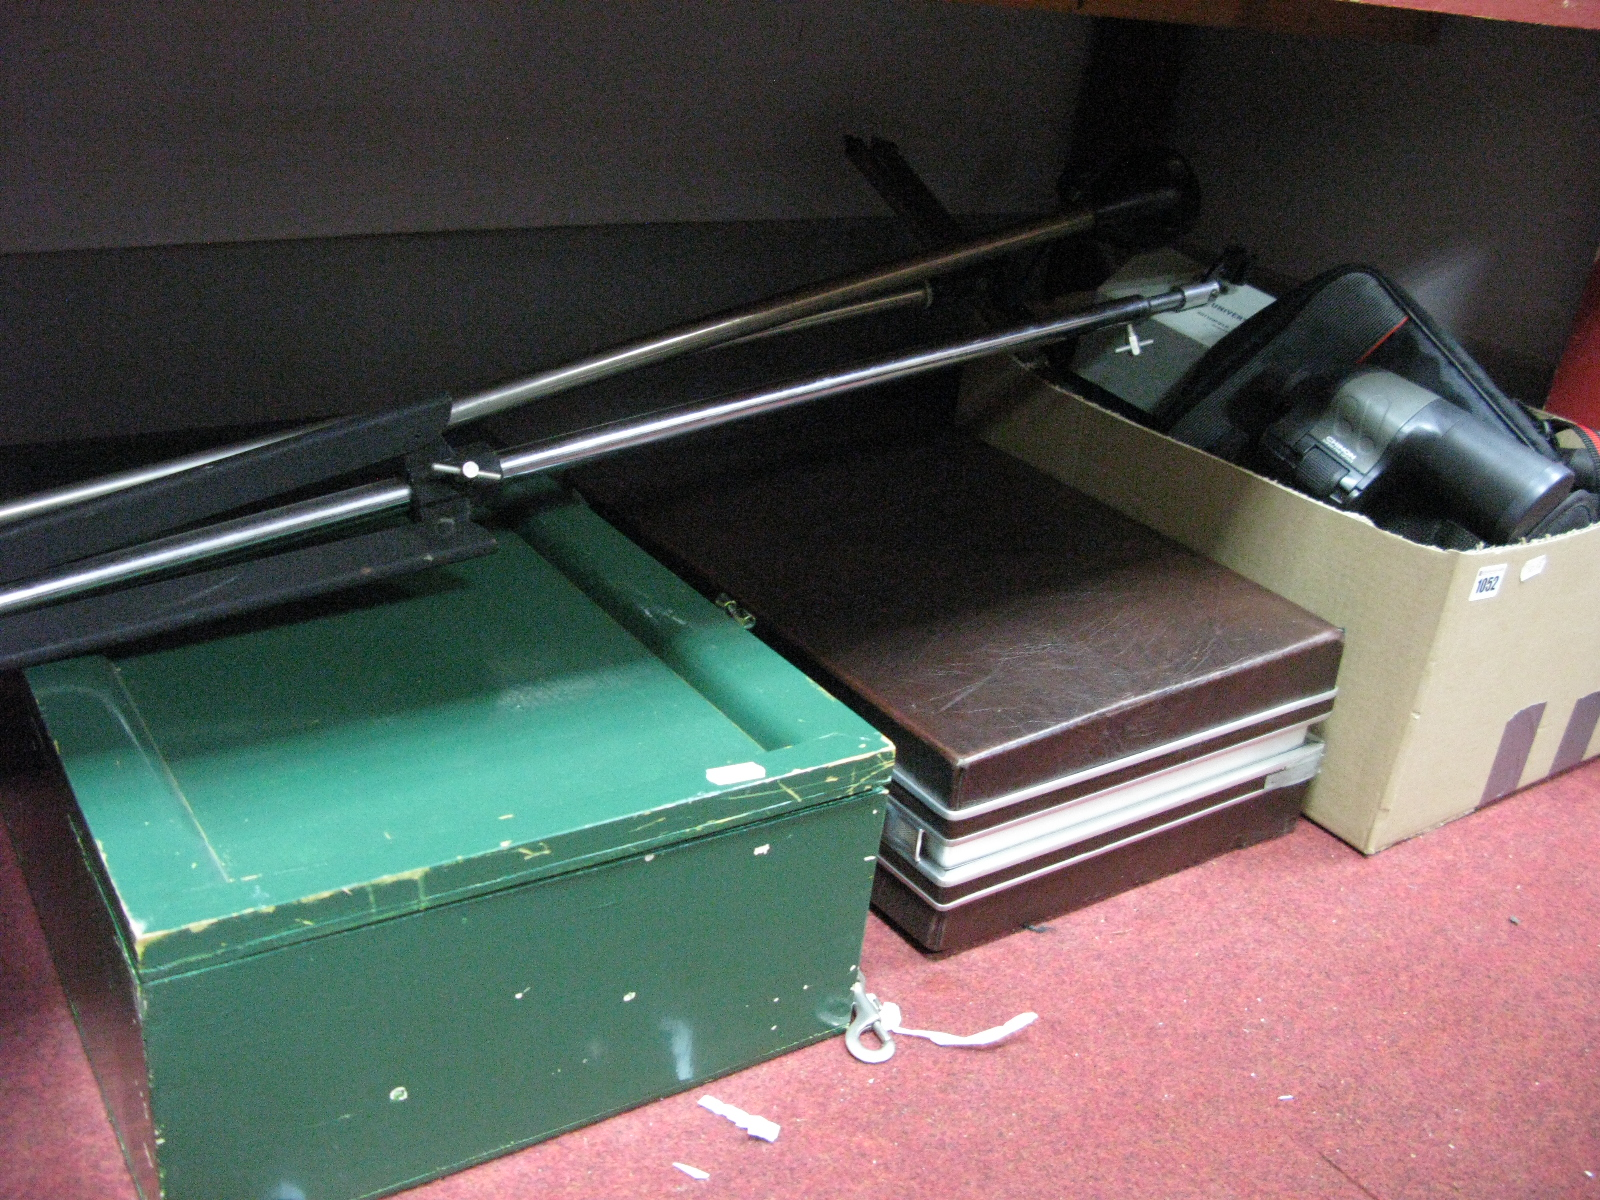 Lot 1052 - Camera Flight Cases, tripods, accessories, leads, cables, Atlas reflector bulbs, Chinon 10 x 50